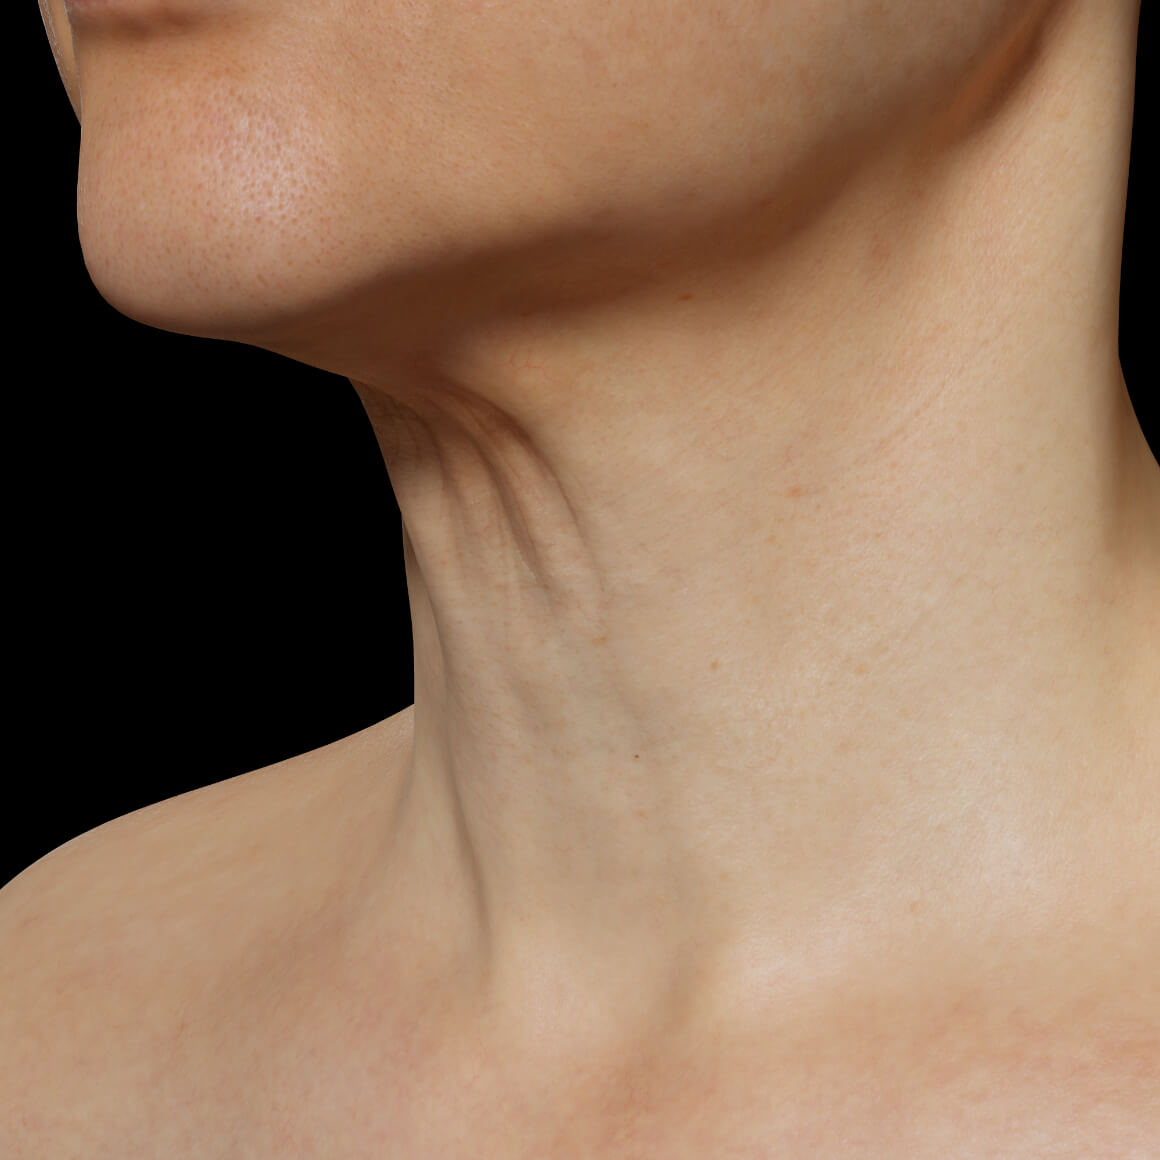 A female patient at Clinique Chloé positioned at an angle showing skin laxity in the neck area